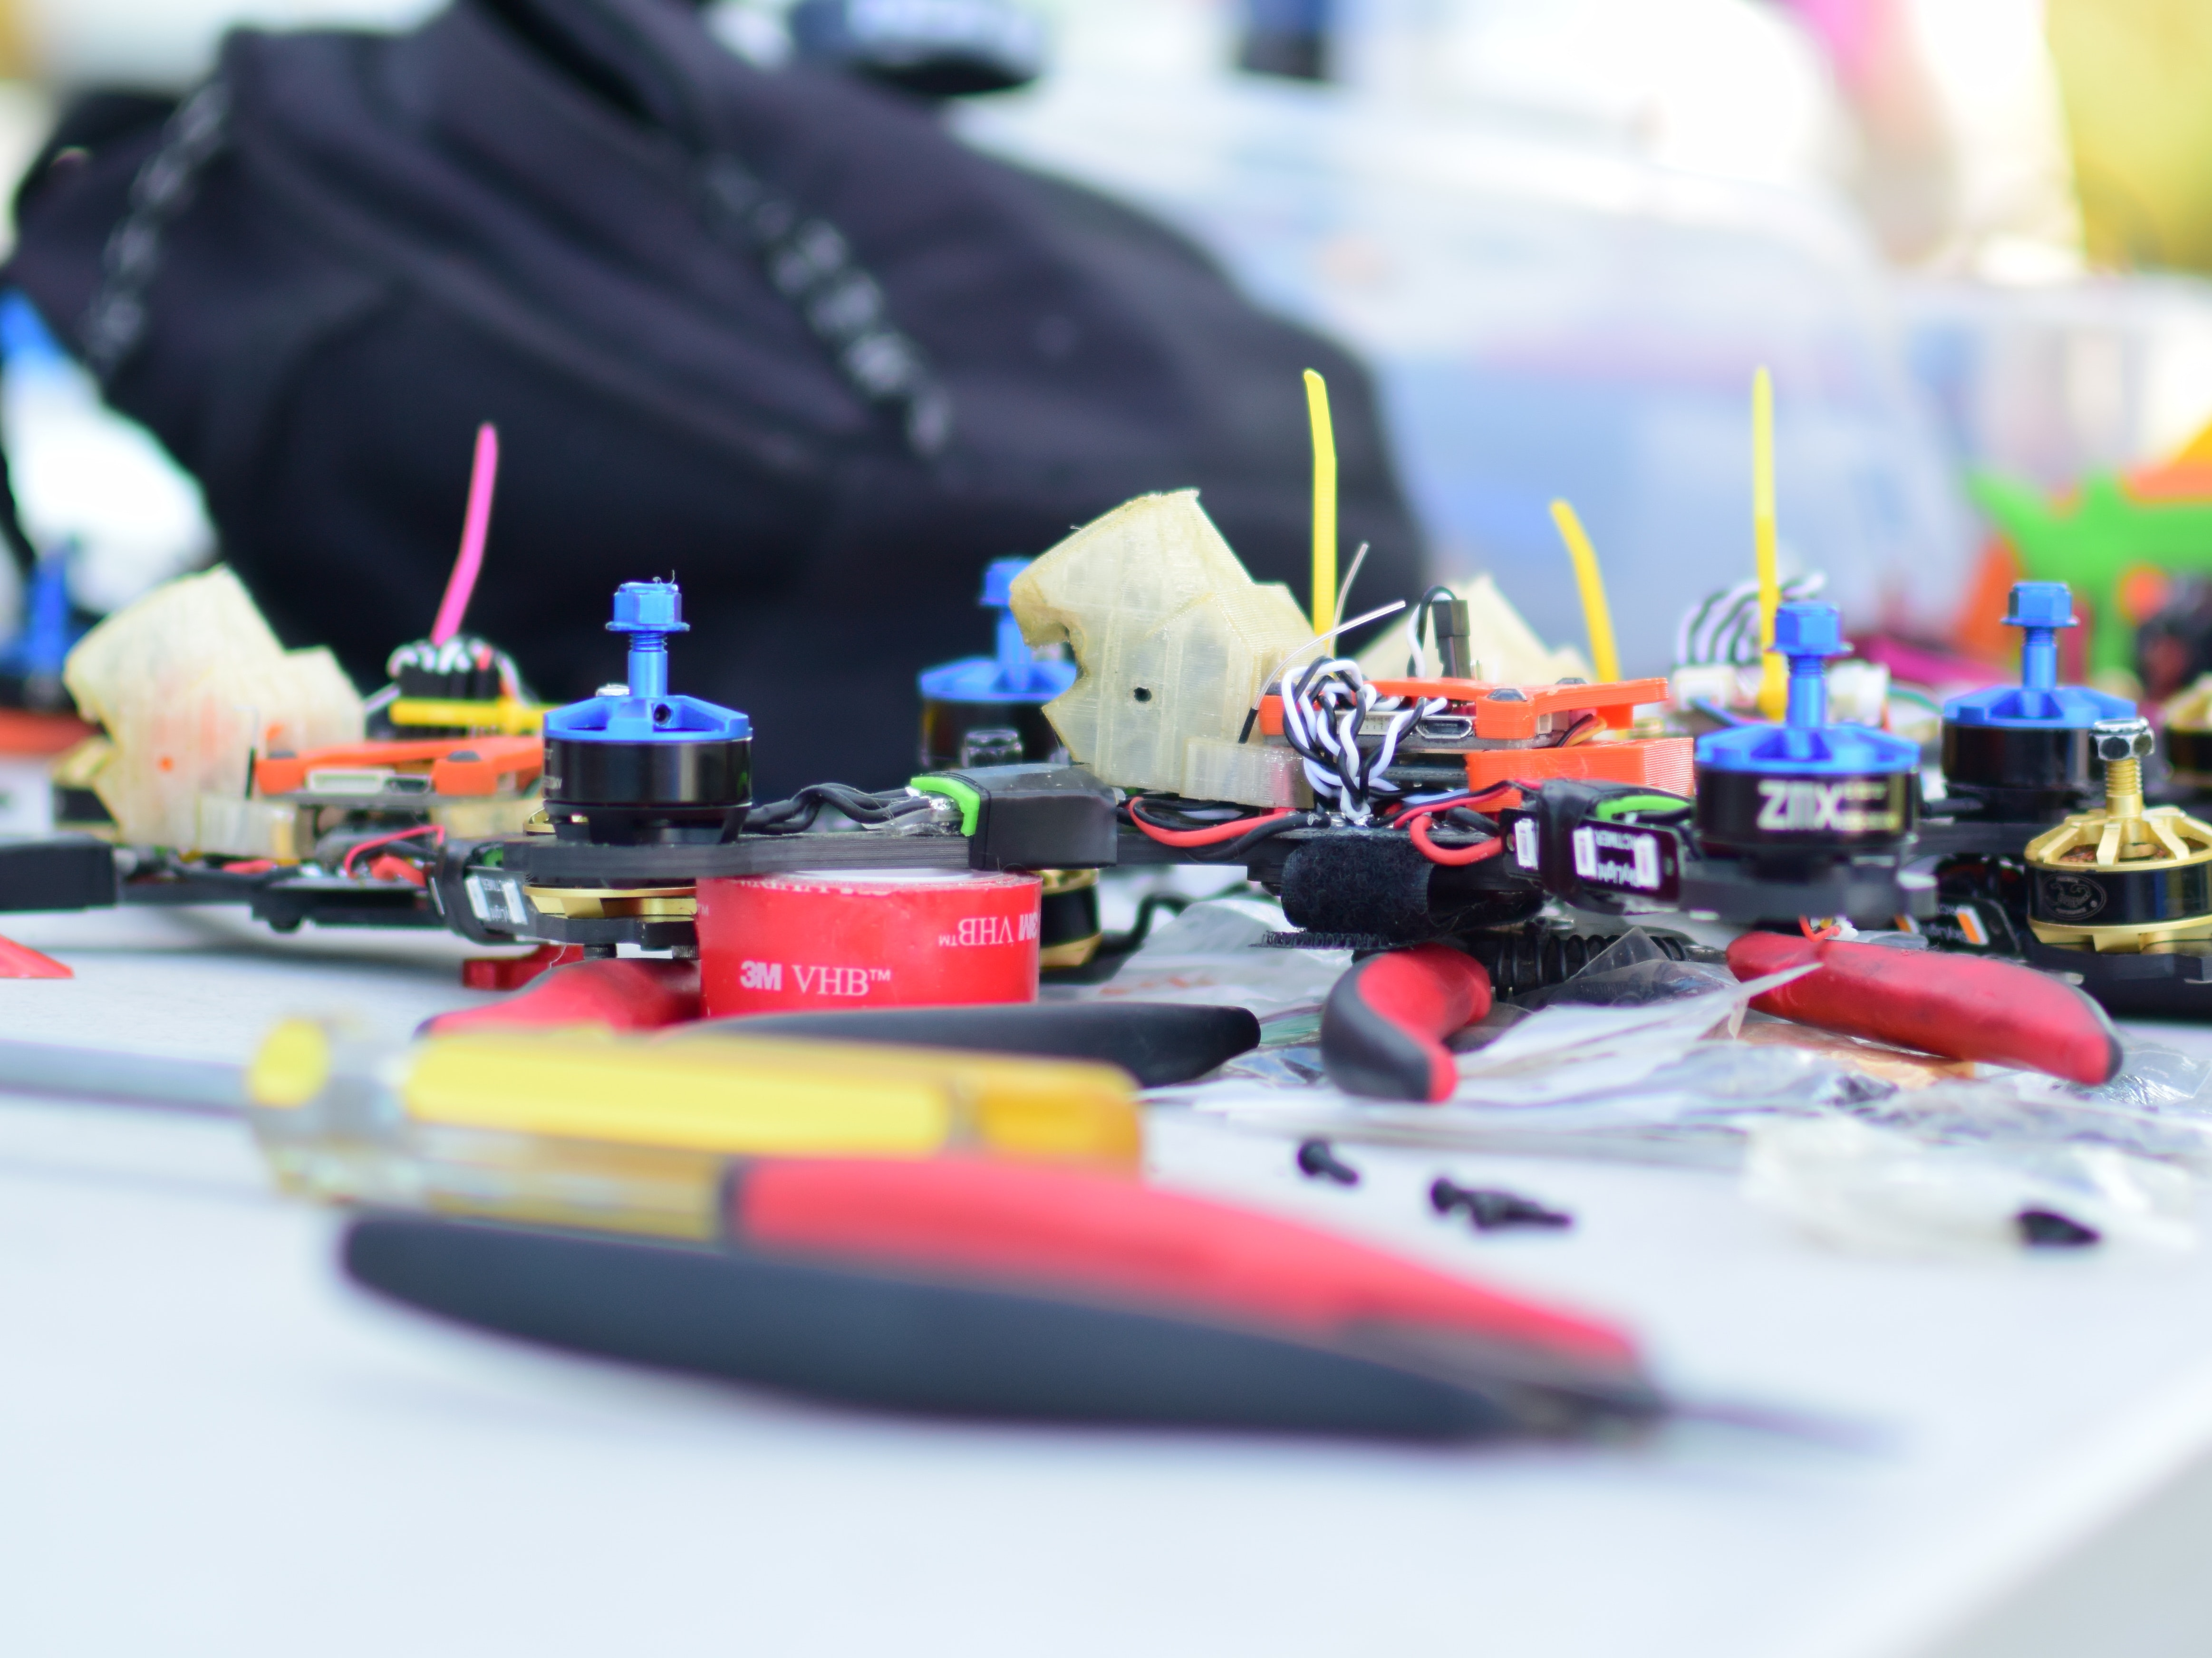 Morris brought six drones to Drone Nationals.